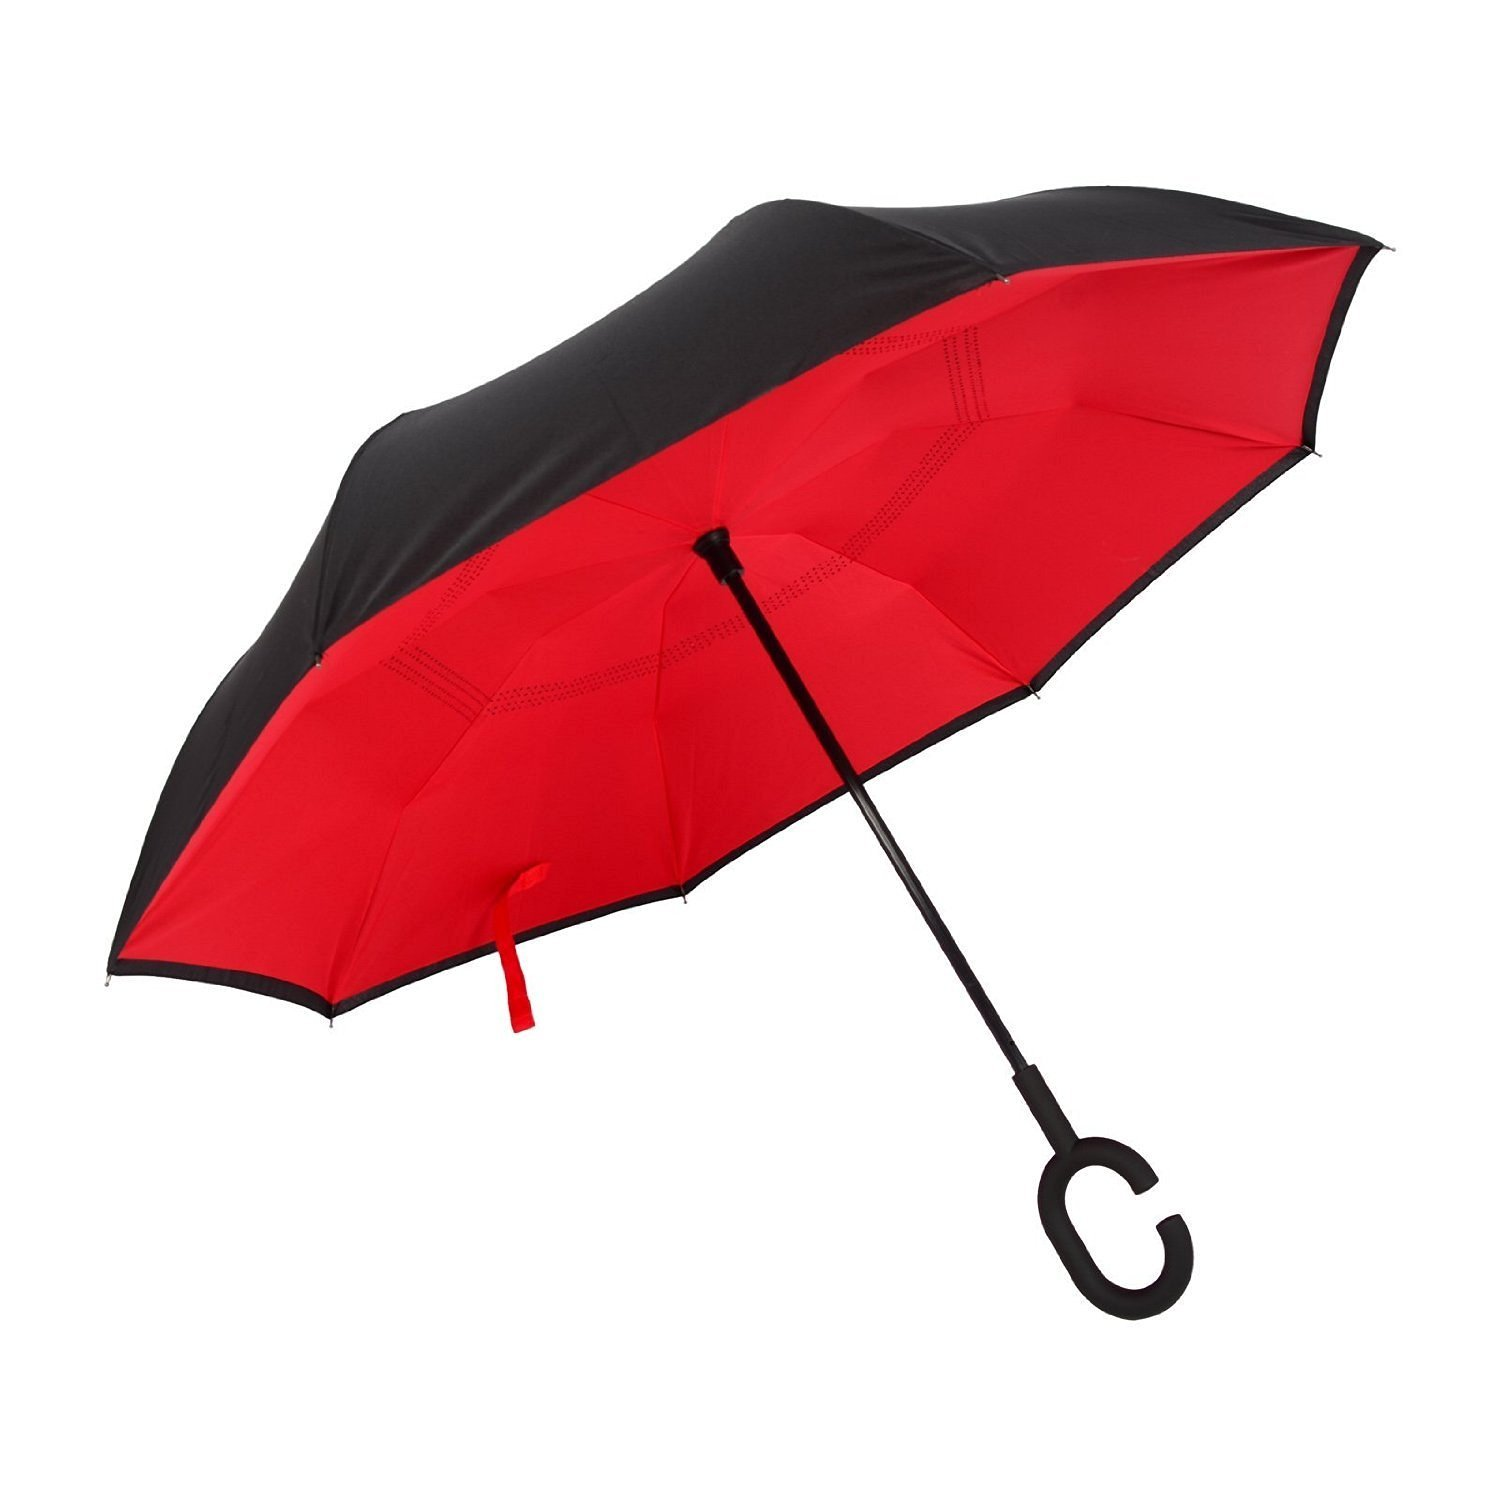 The Smart-Brella - World's First Fully Reversible Windproof Umbrella (Red)